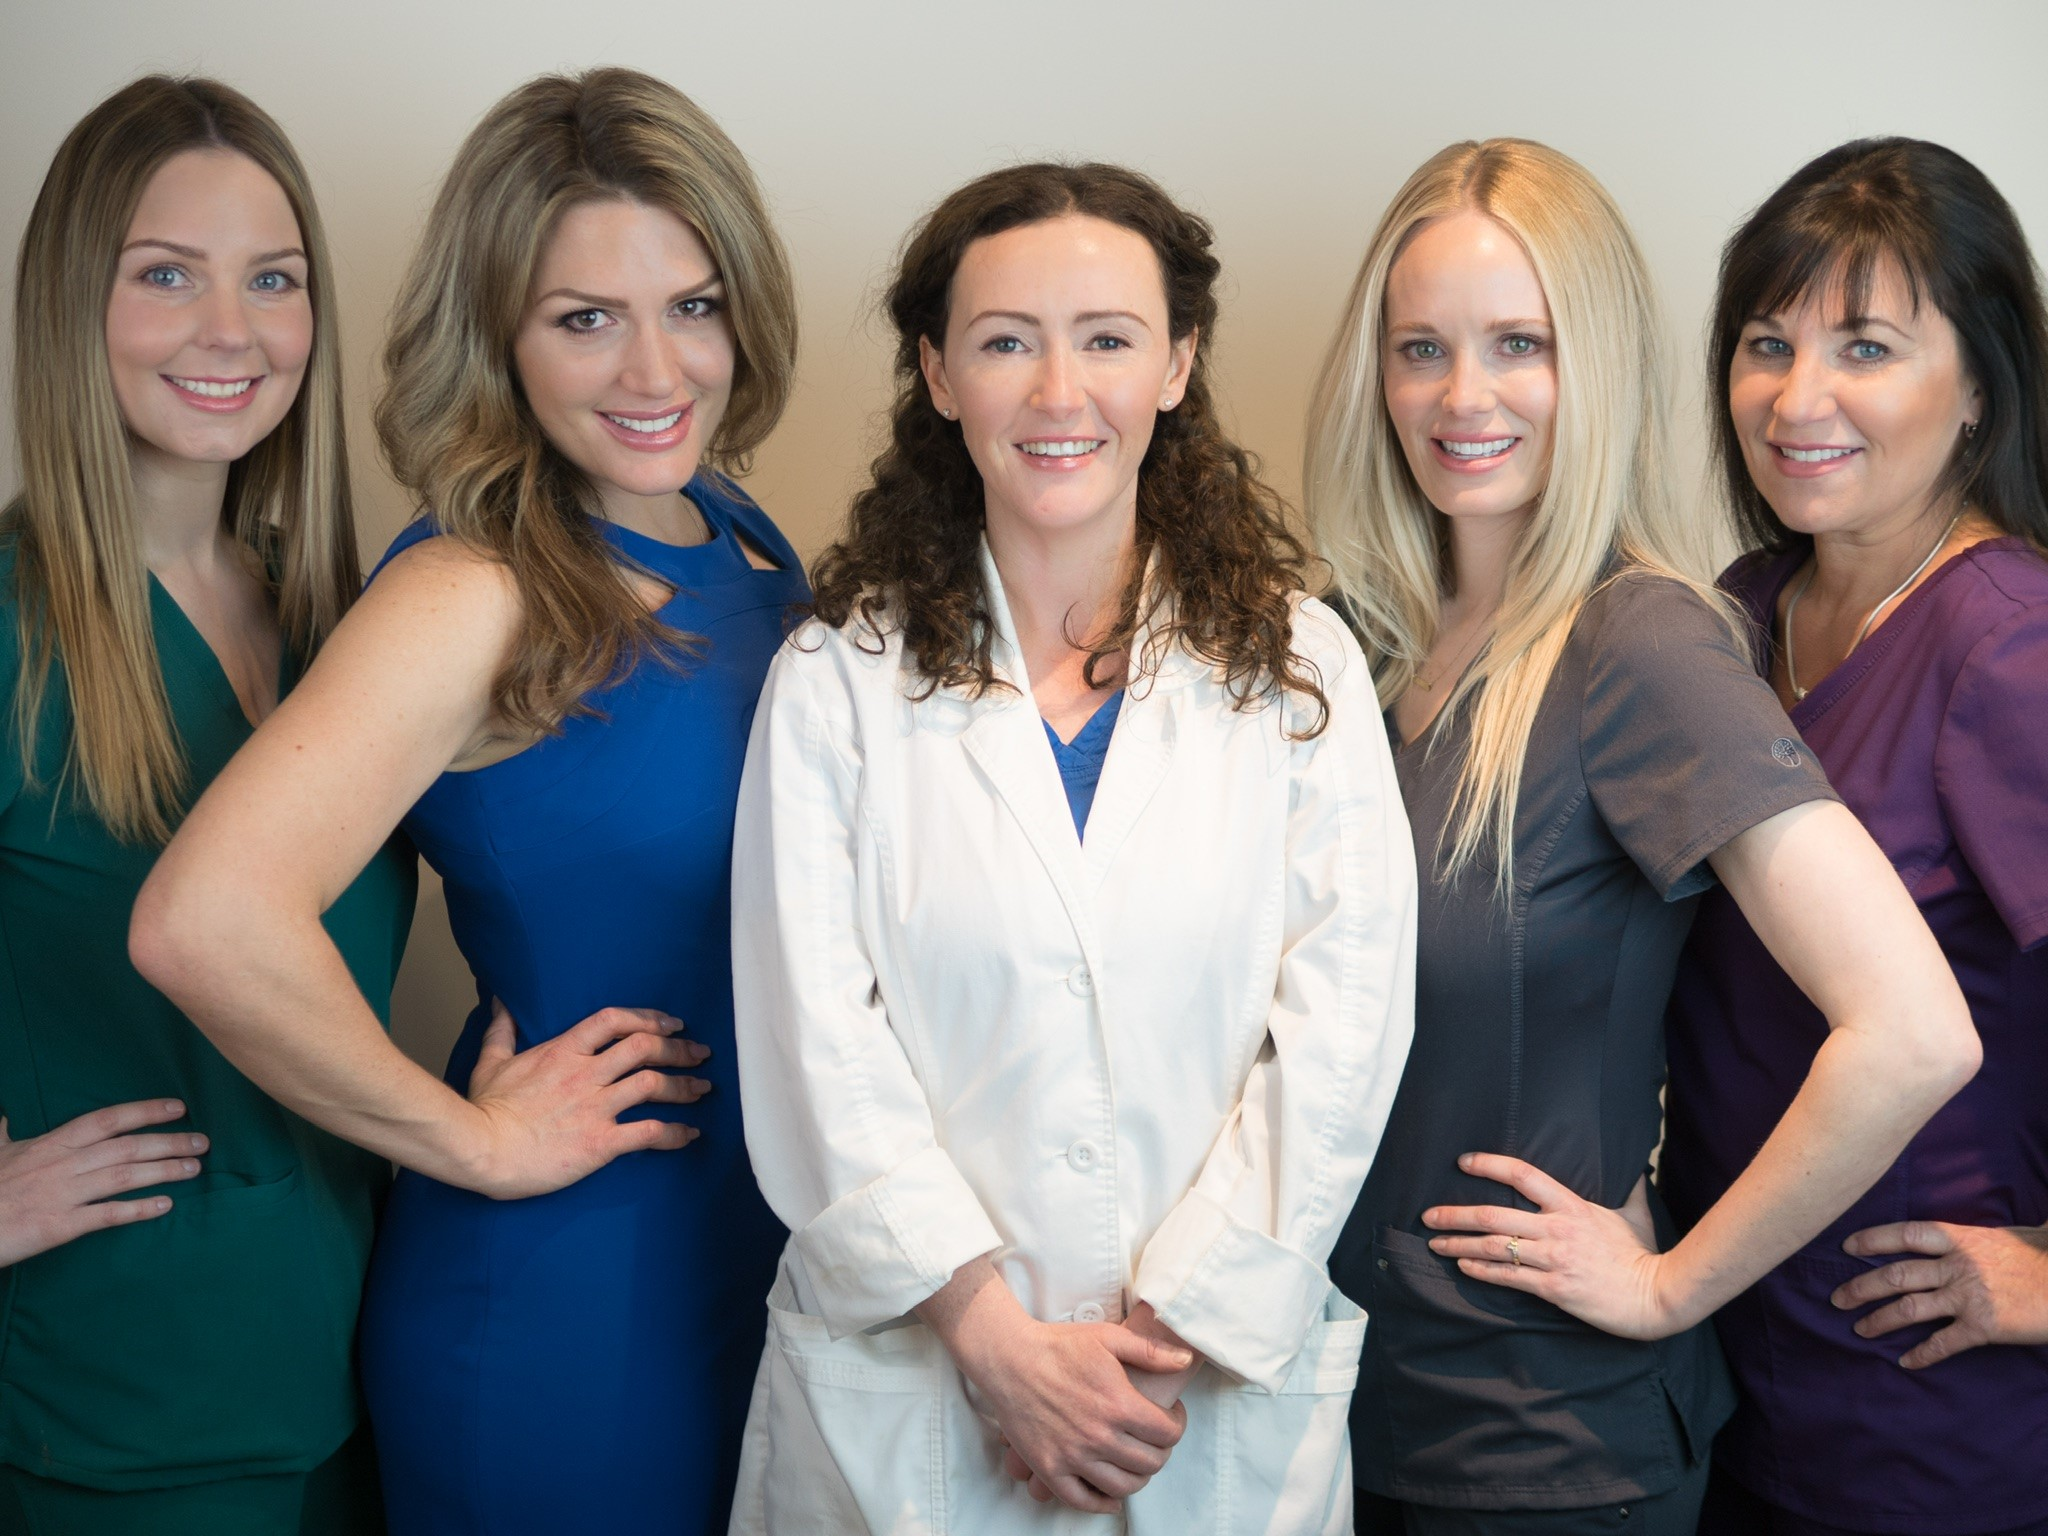 Whistler Medical Aesthetics - Image 2